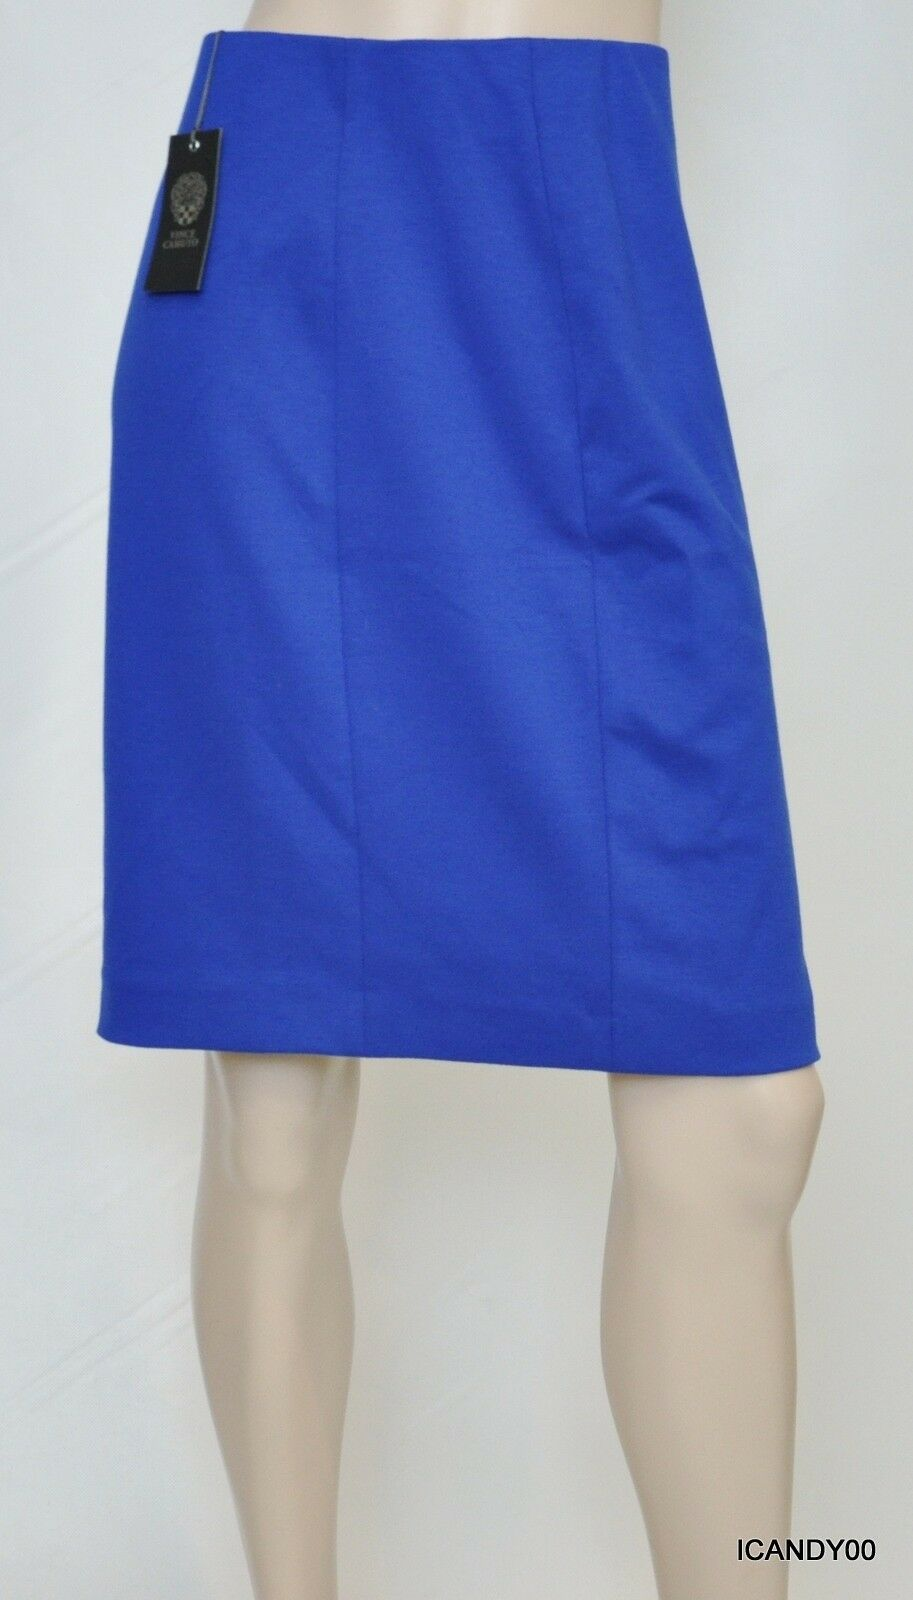 Nwt  Vince Camuto Stretch Jersey Solid Pencil Skirt Emperor bluee 8